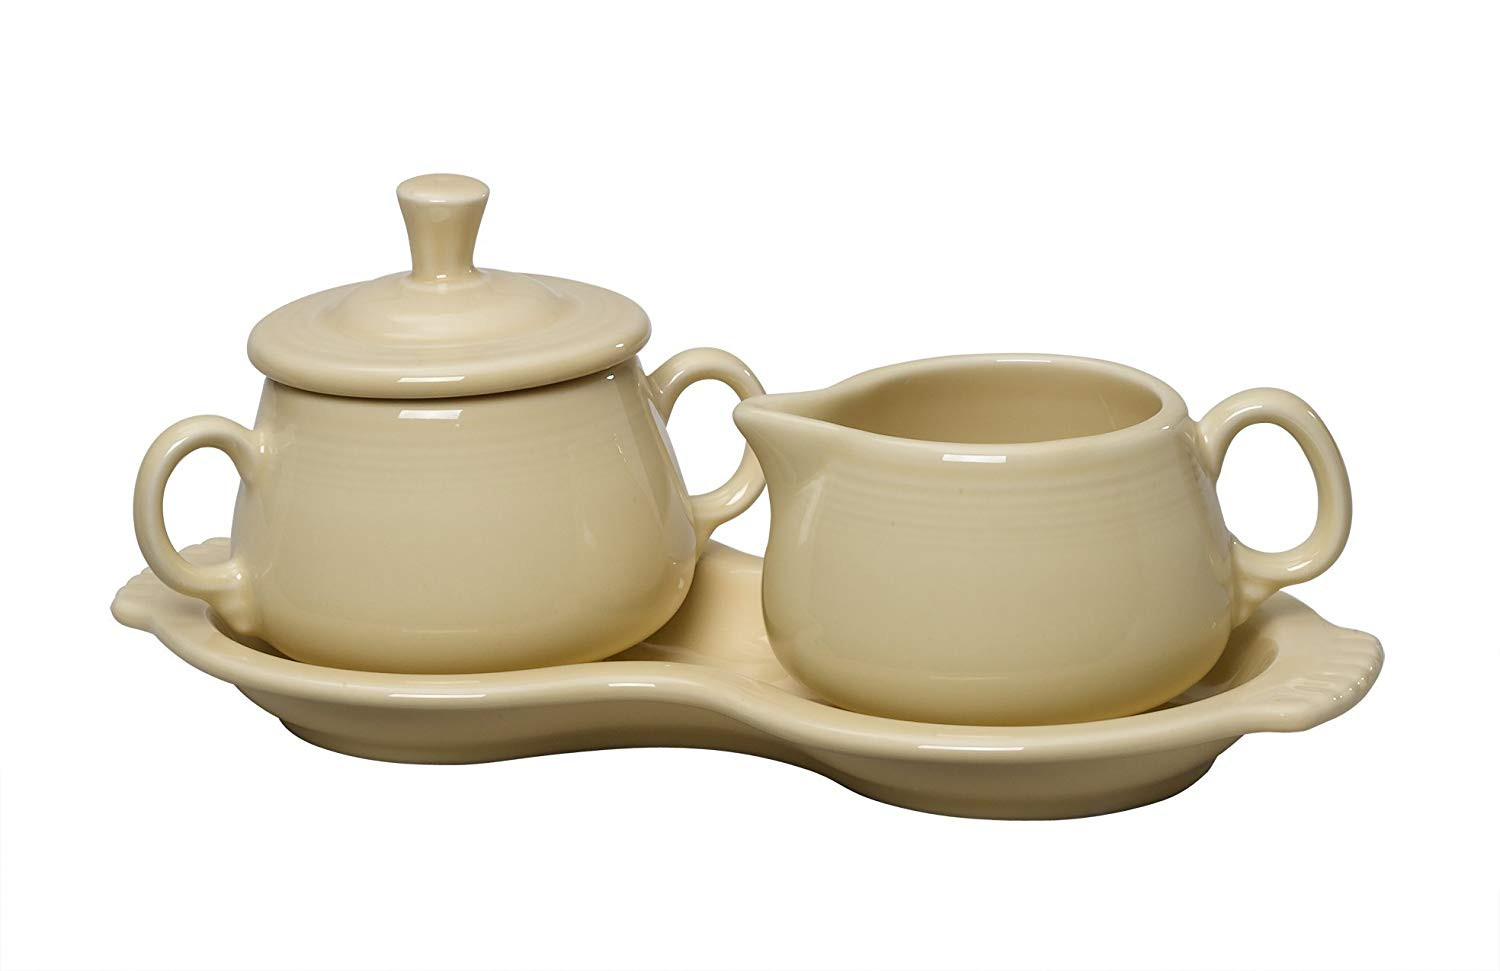 23 Famous Fiestaware Vase Prices 2021 free download fiestaware vase prices of amazon com fiesta covered creamer and sugar set with tray white within amazon com fiesta covered creamer and sugar set with tray white cream and sugar sets sugar bo